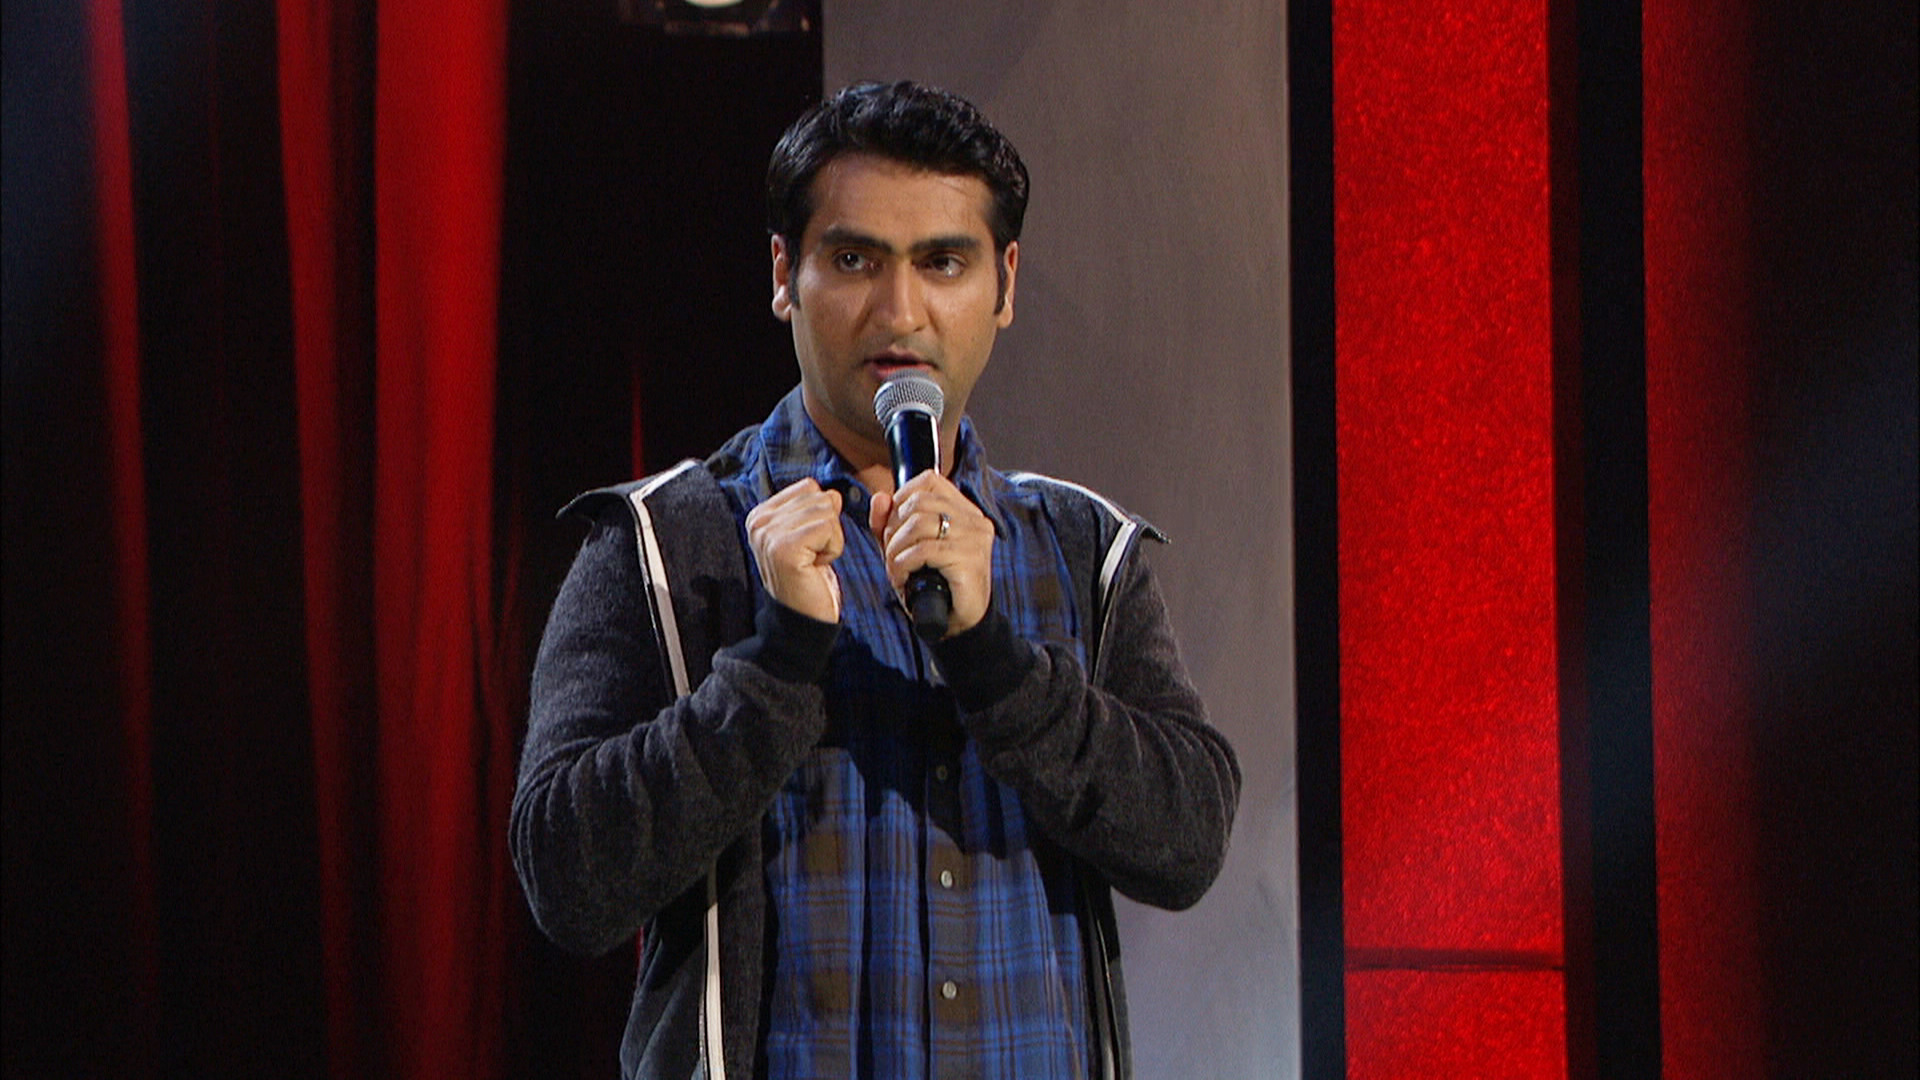 Uncensored - Kumail Nanjiani - Too Young for Porn Pt. 1